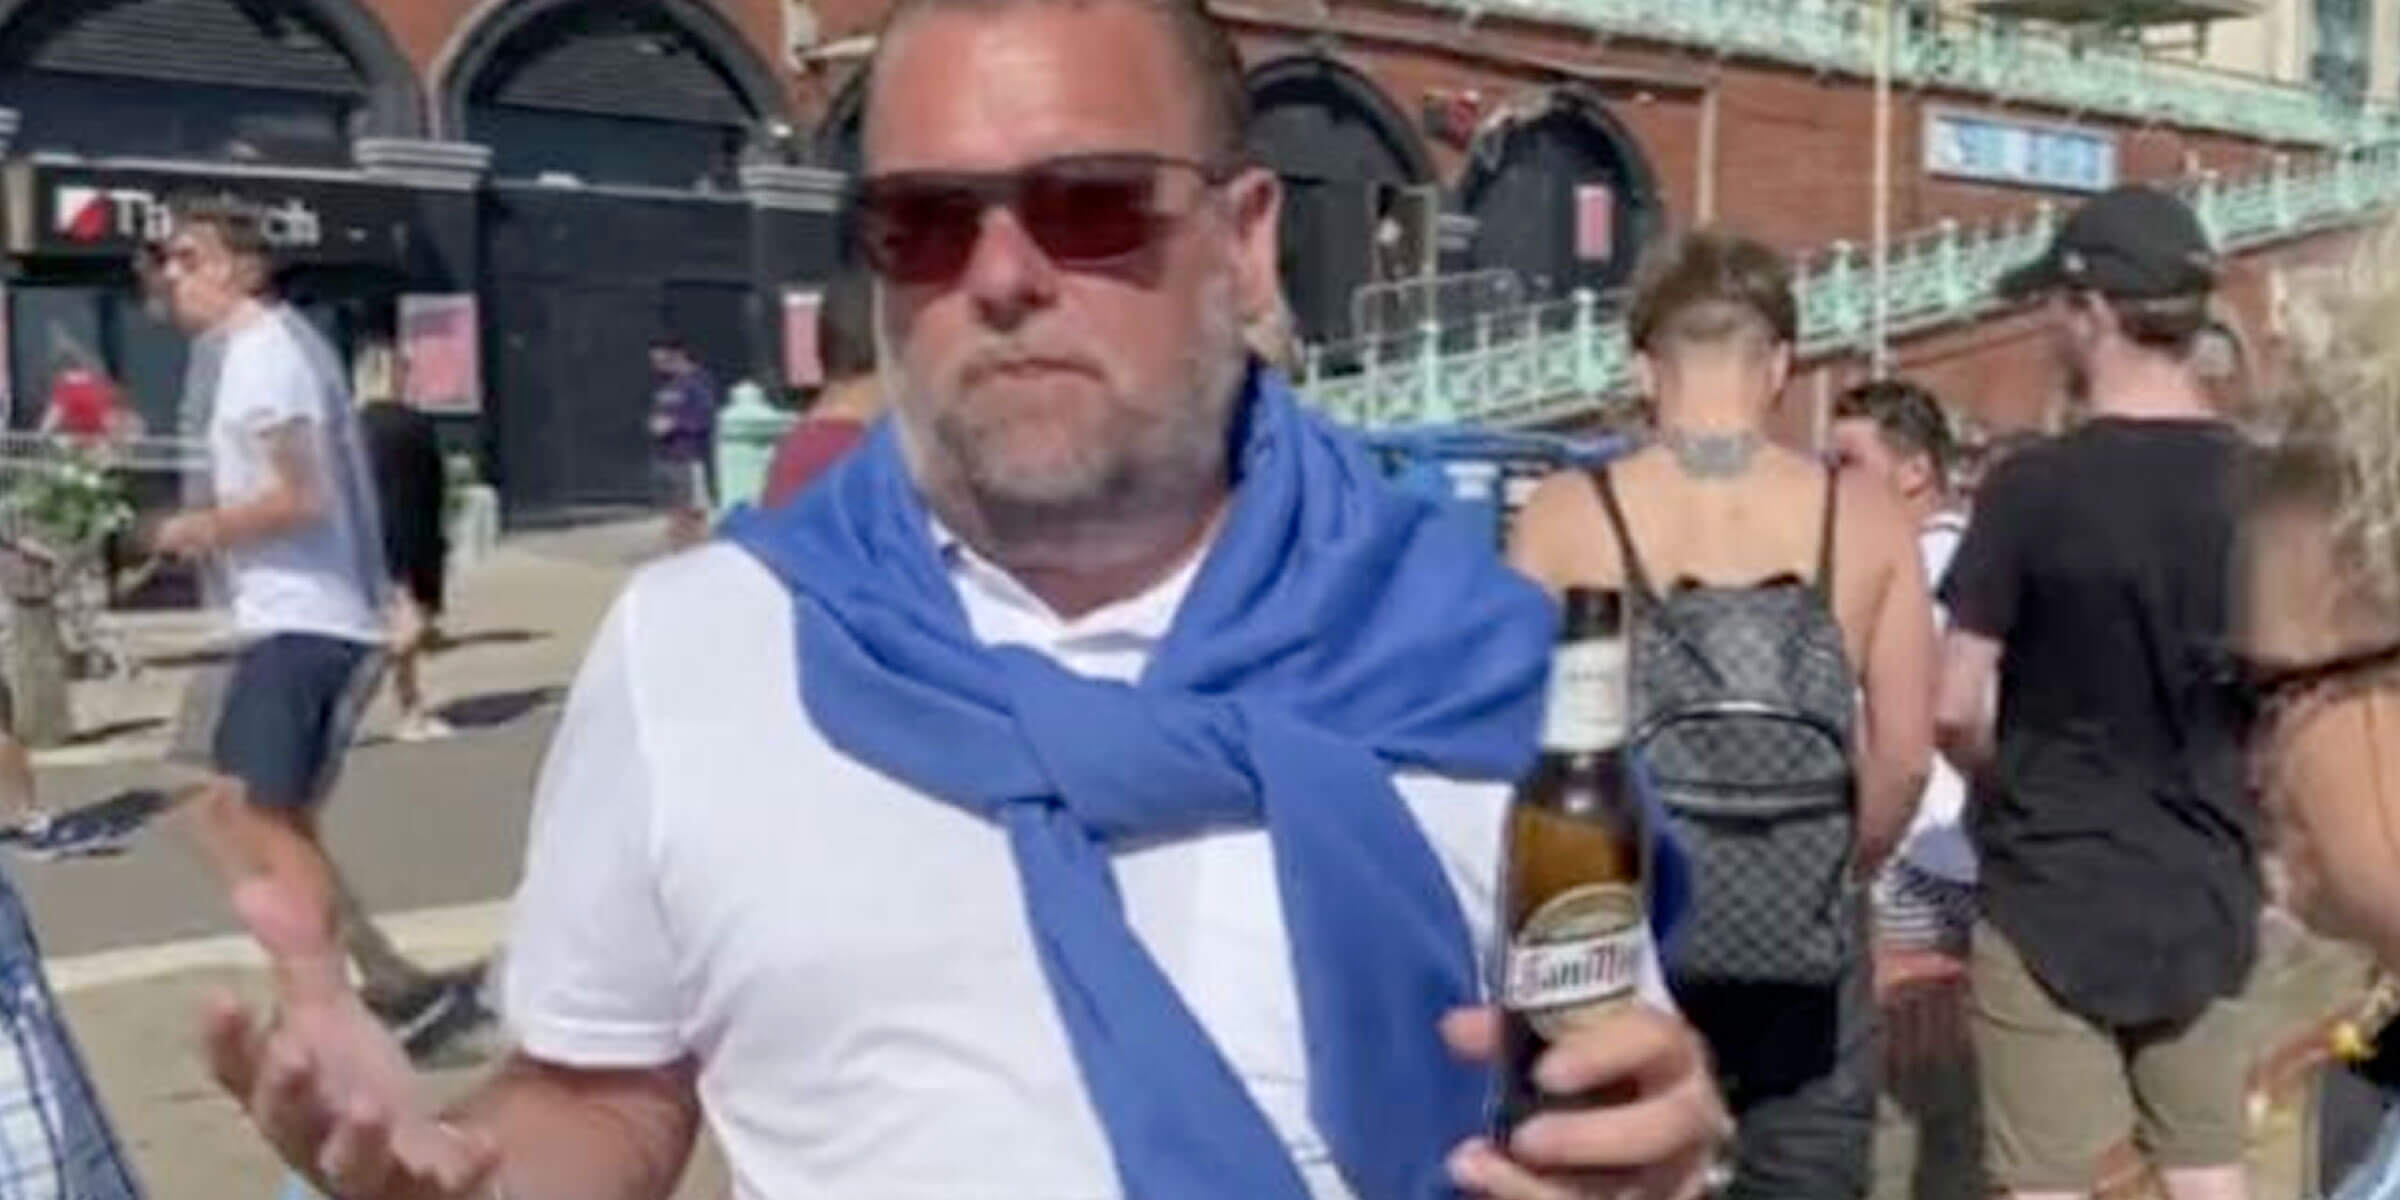 While a crowd enoyed the Brighton's seafront, one man drinking a beer was caught on camera complaining about the easing of lockdown restrictions.